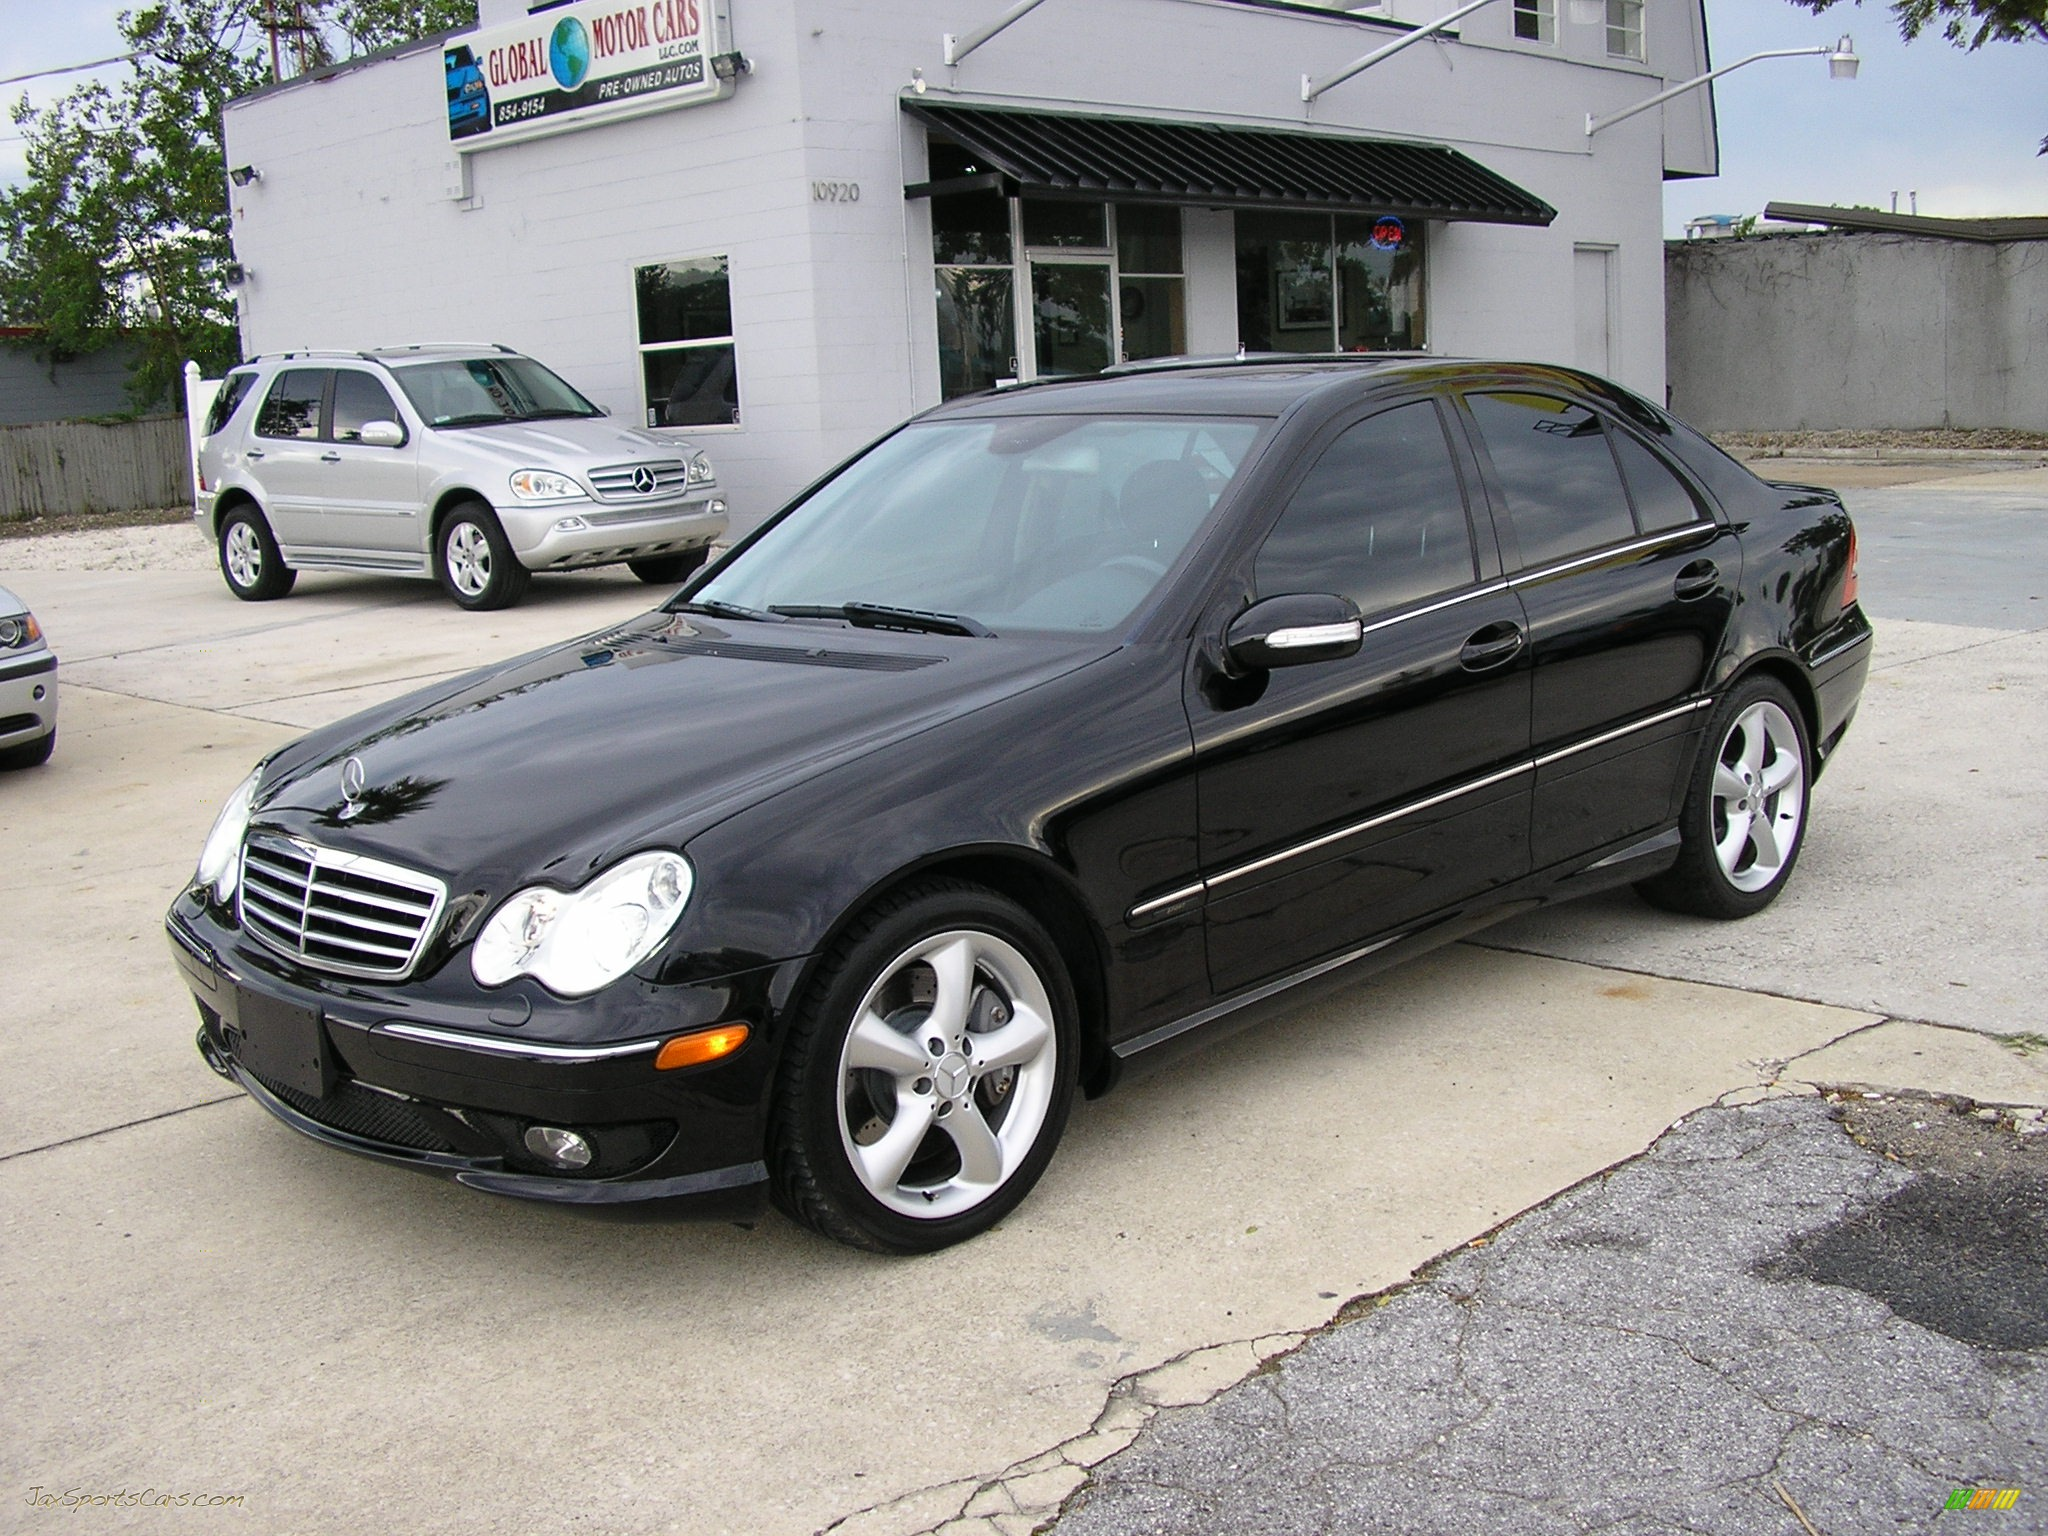 2005 mercedes benz c 230 kompressor sedan in black photo. Black Bedroom Furniture Sets. Home Design Ideas